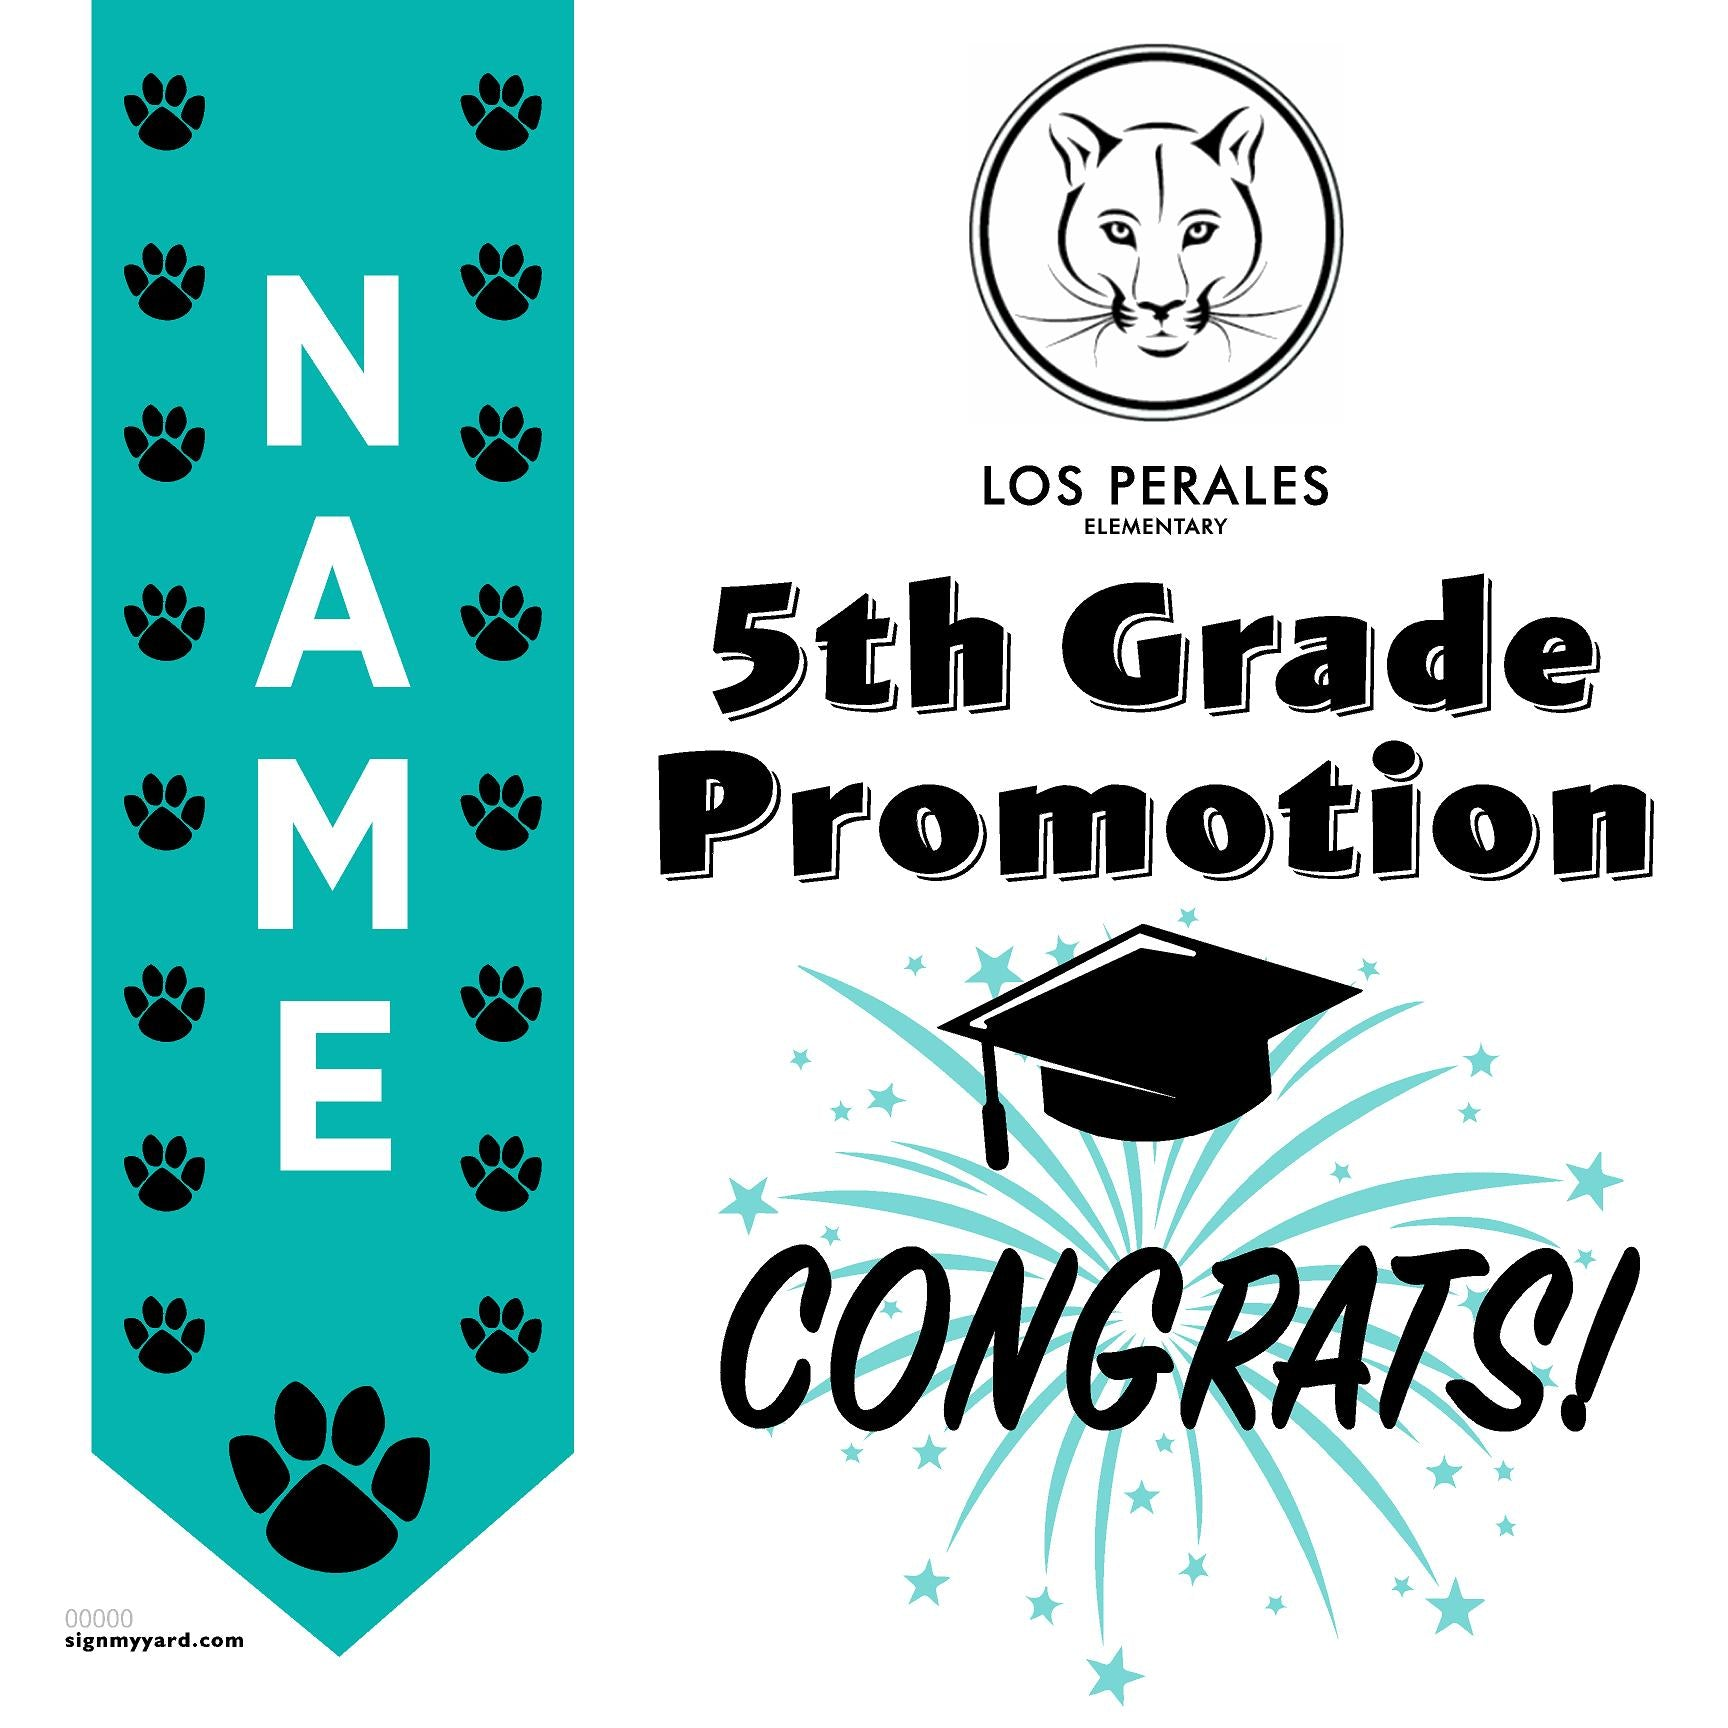 Los Perales Elementary School 5th Grade Promotion 24x24 #shineon2027 Yard Sign (Option B)